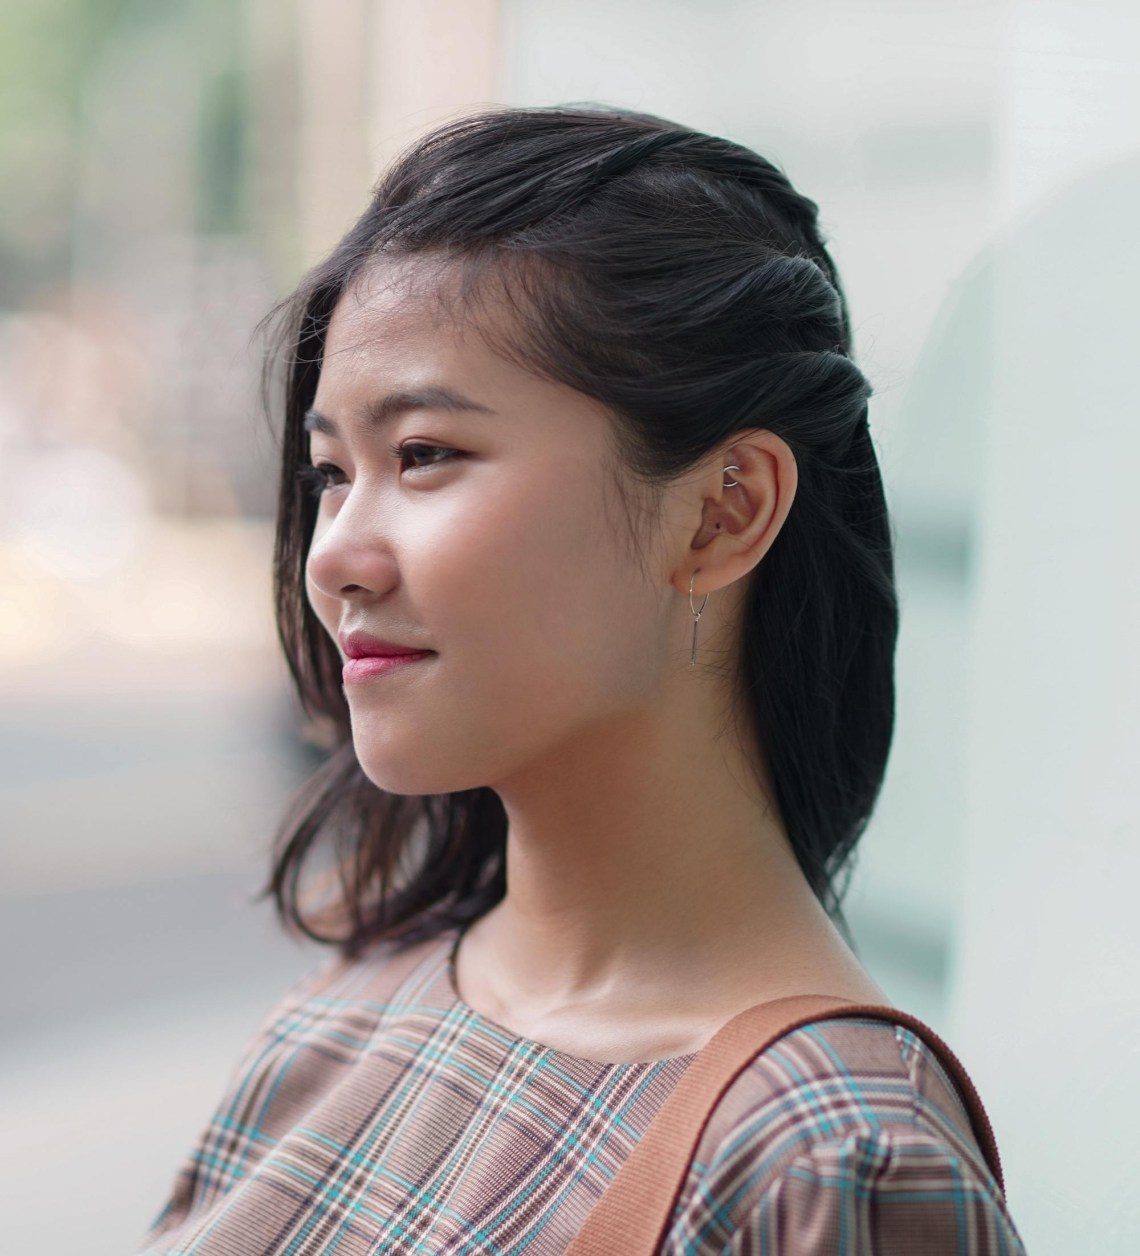 Shoulder Length Hairstyles: 30 Looks For Filipinas! Asian Women'S Hairstyles Medium Length